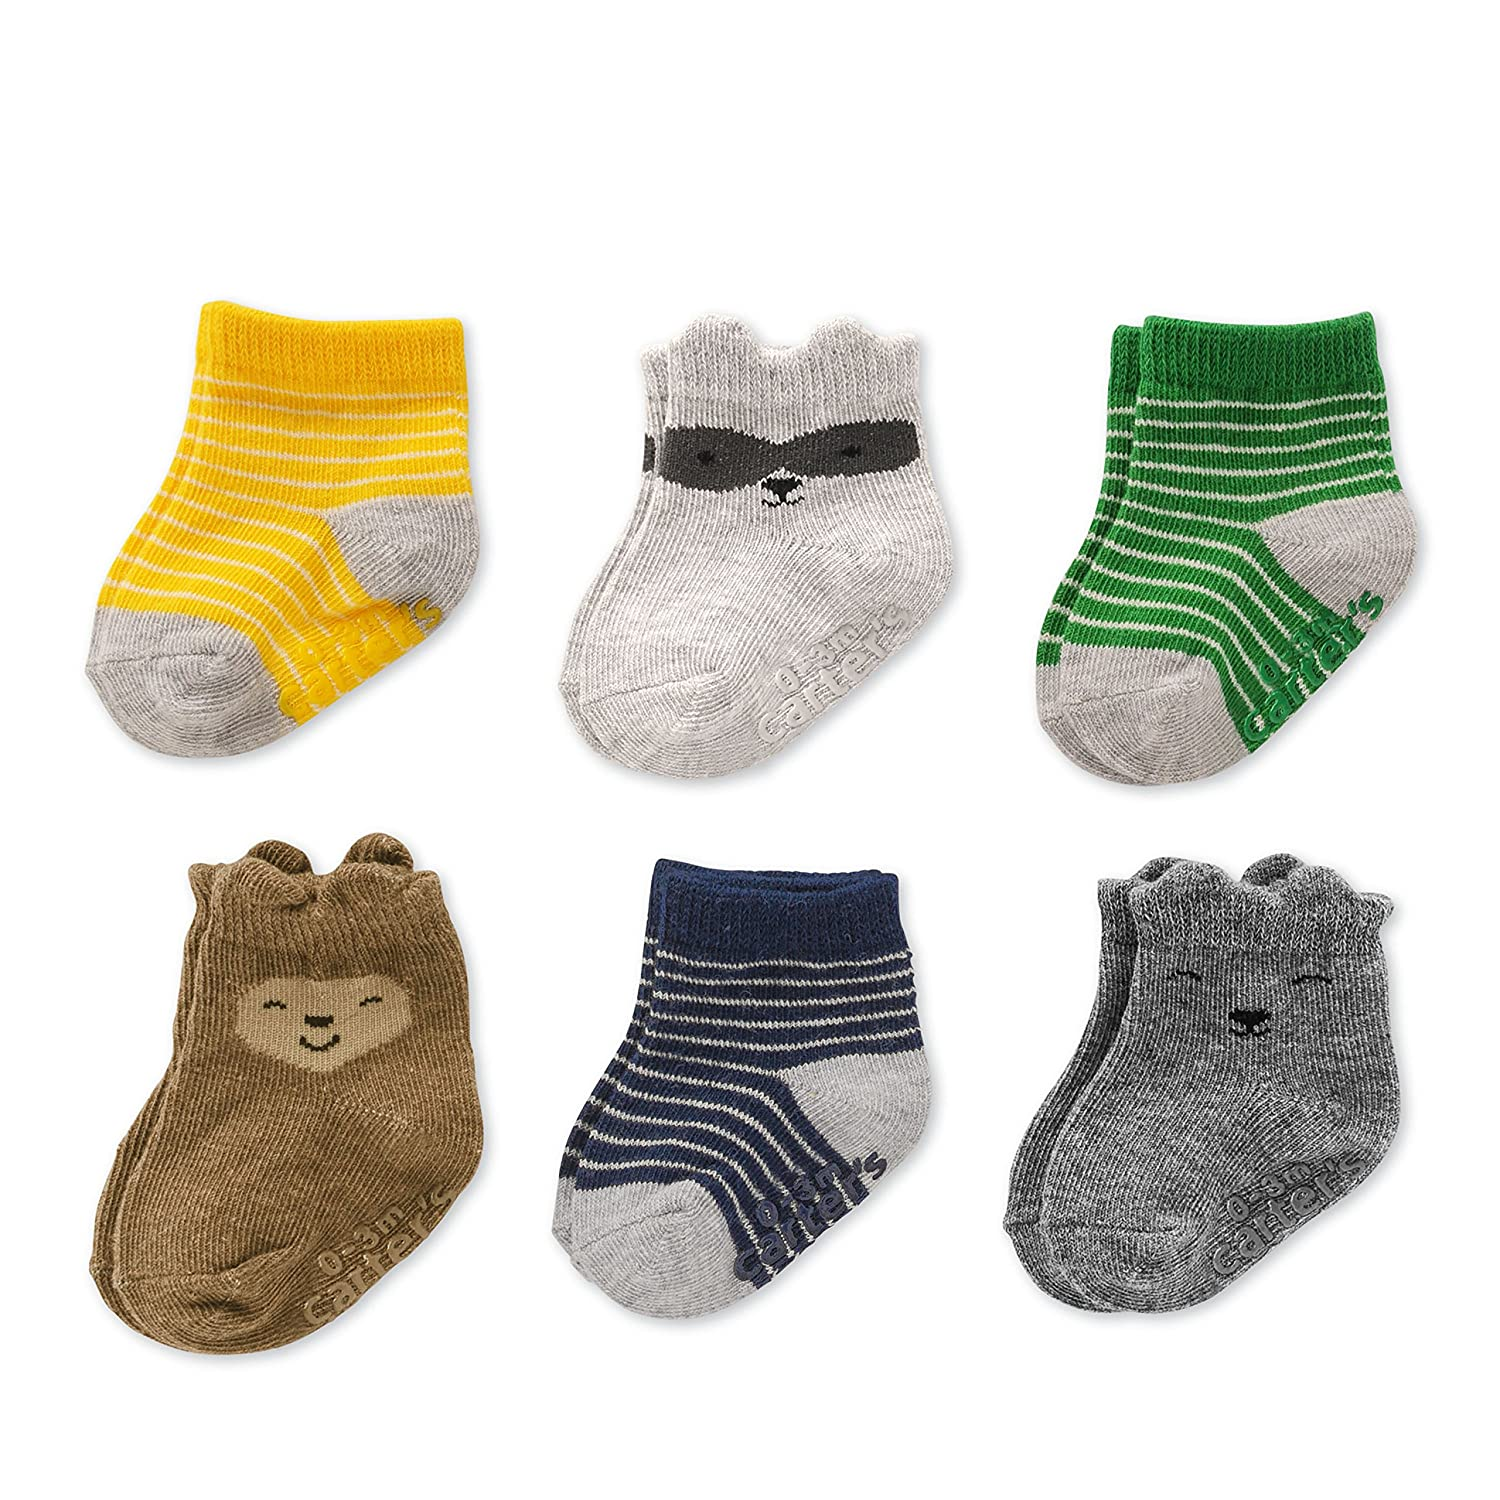 Baby Boys Socks 6 Pack with Non-Slip Grippers, 3-12 Months Carter's CR03253-312-AMZ